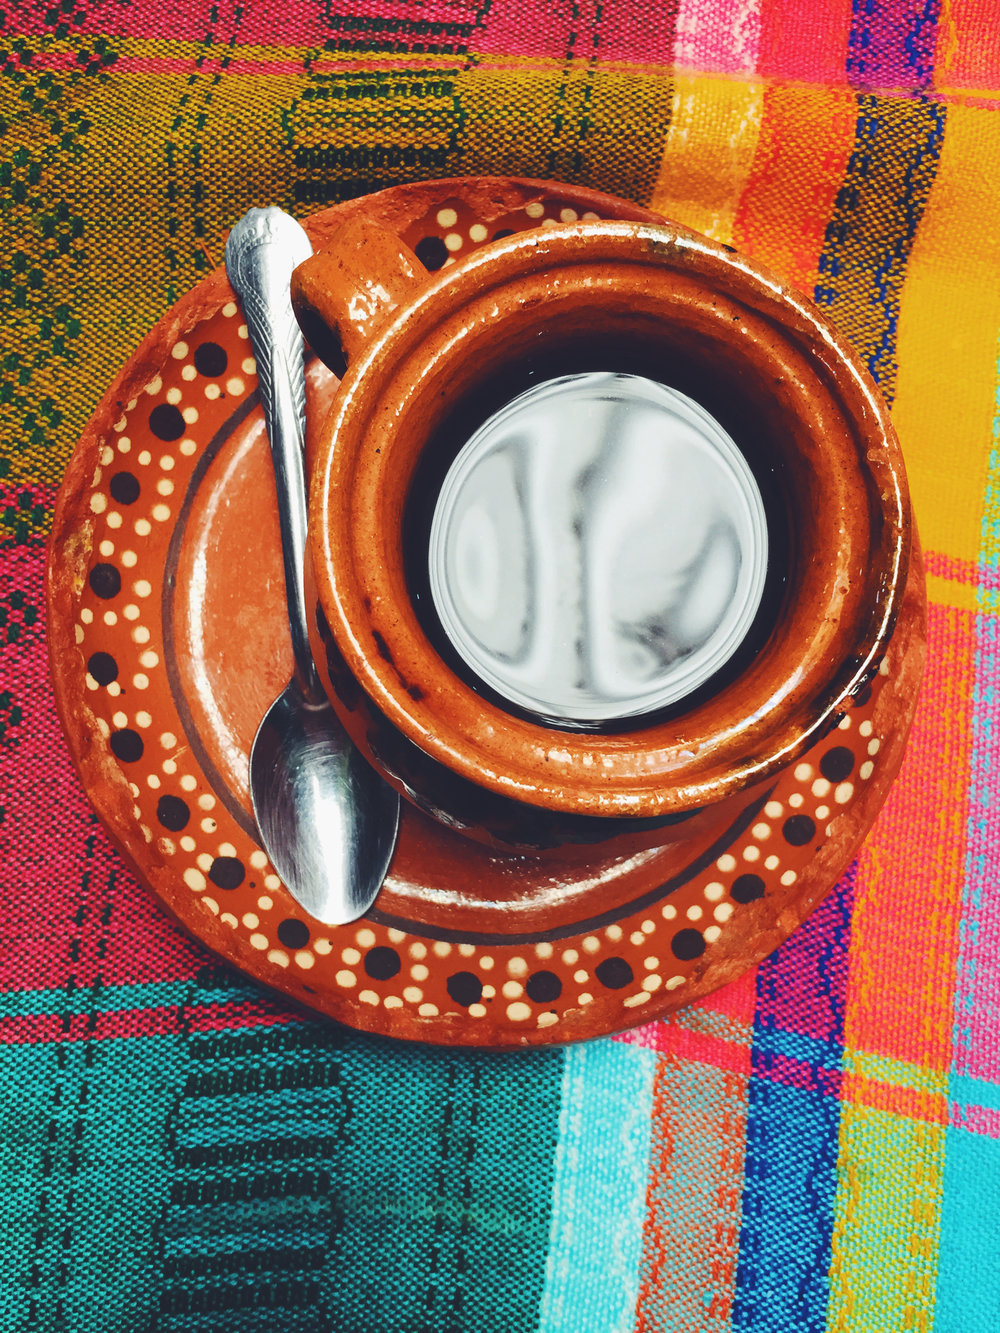 Coffee simmered with cinnamon in Teotixoacan